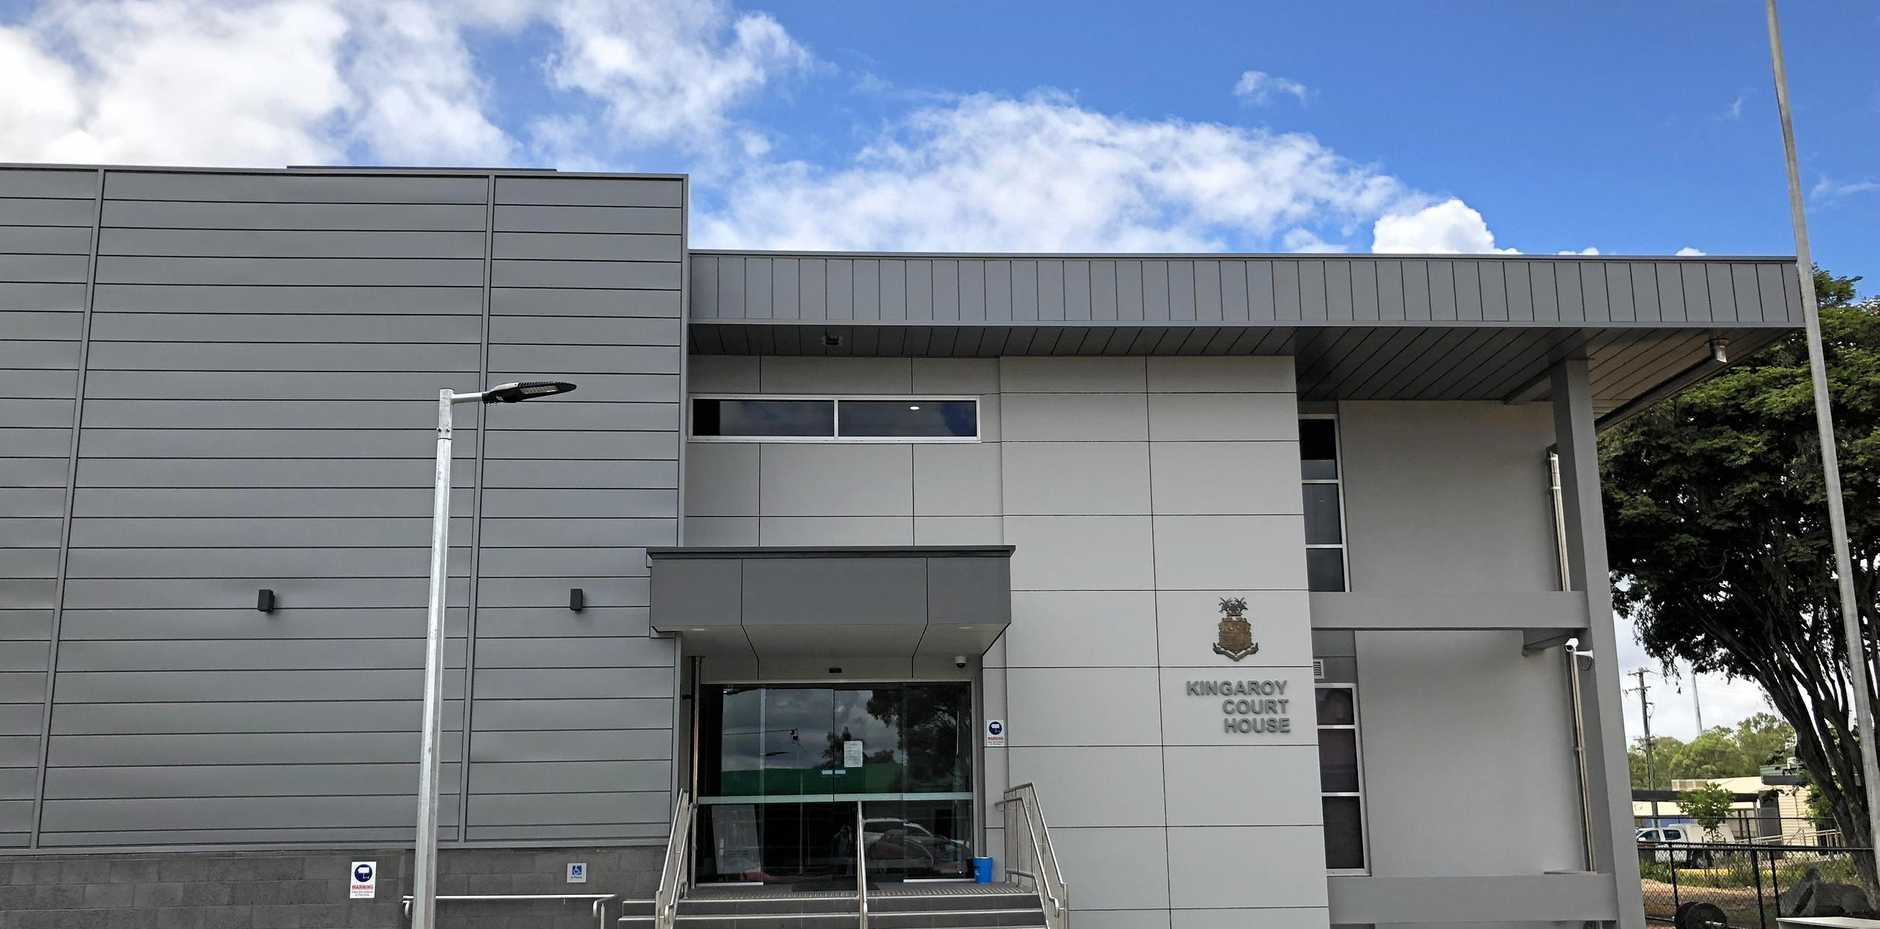 Kingaroy District Court heard the case on Wednesday August 22.